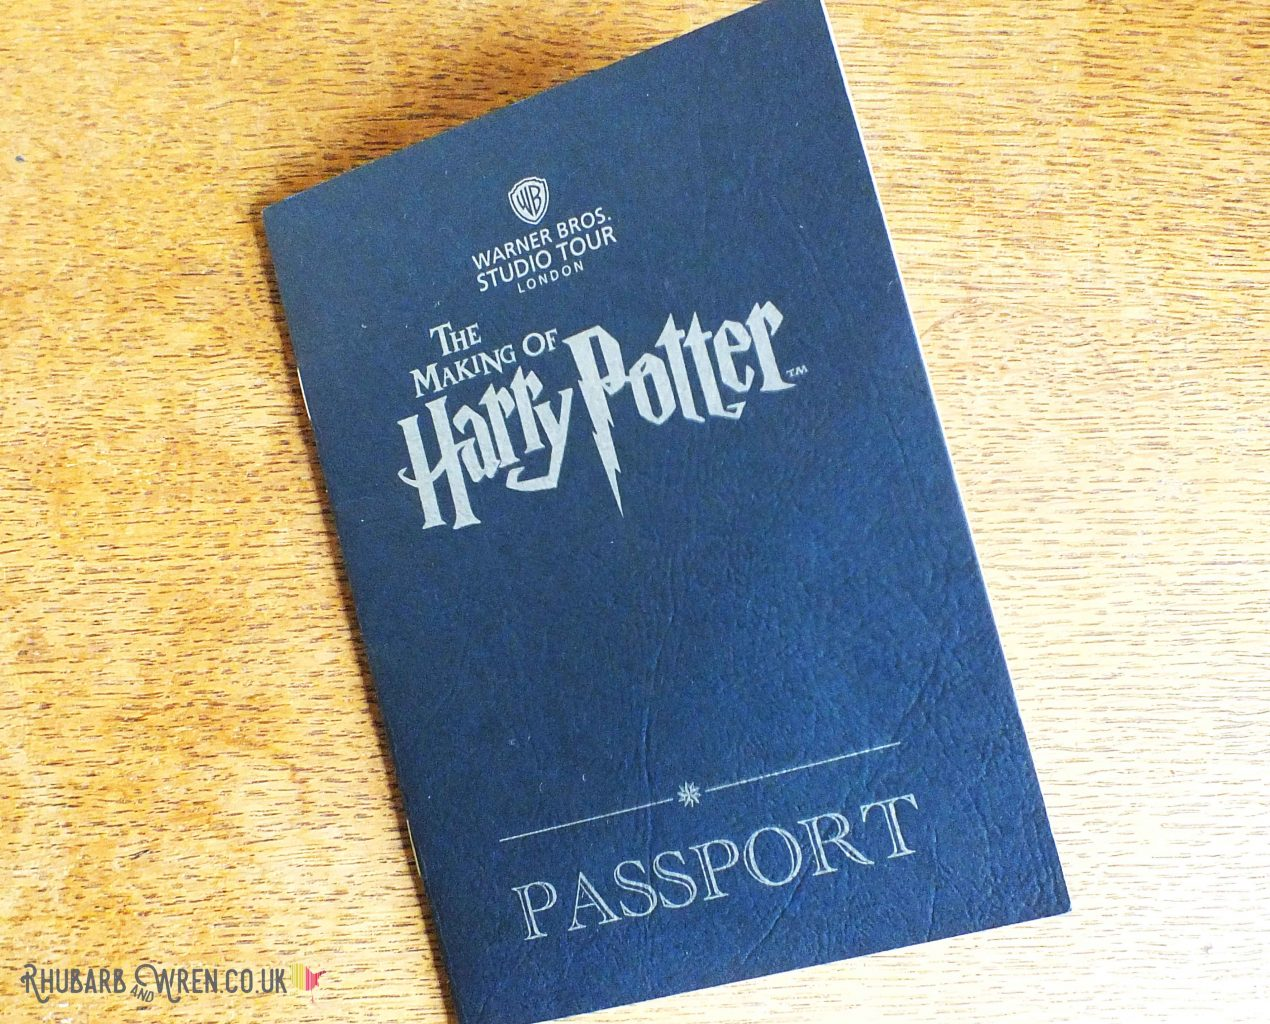 Free kids passport from the Harry Potter studio tour